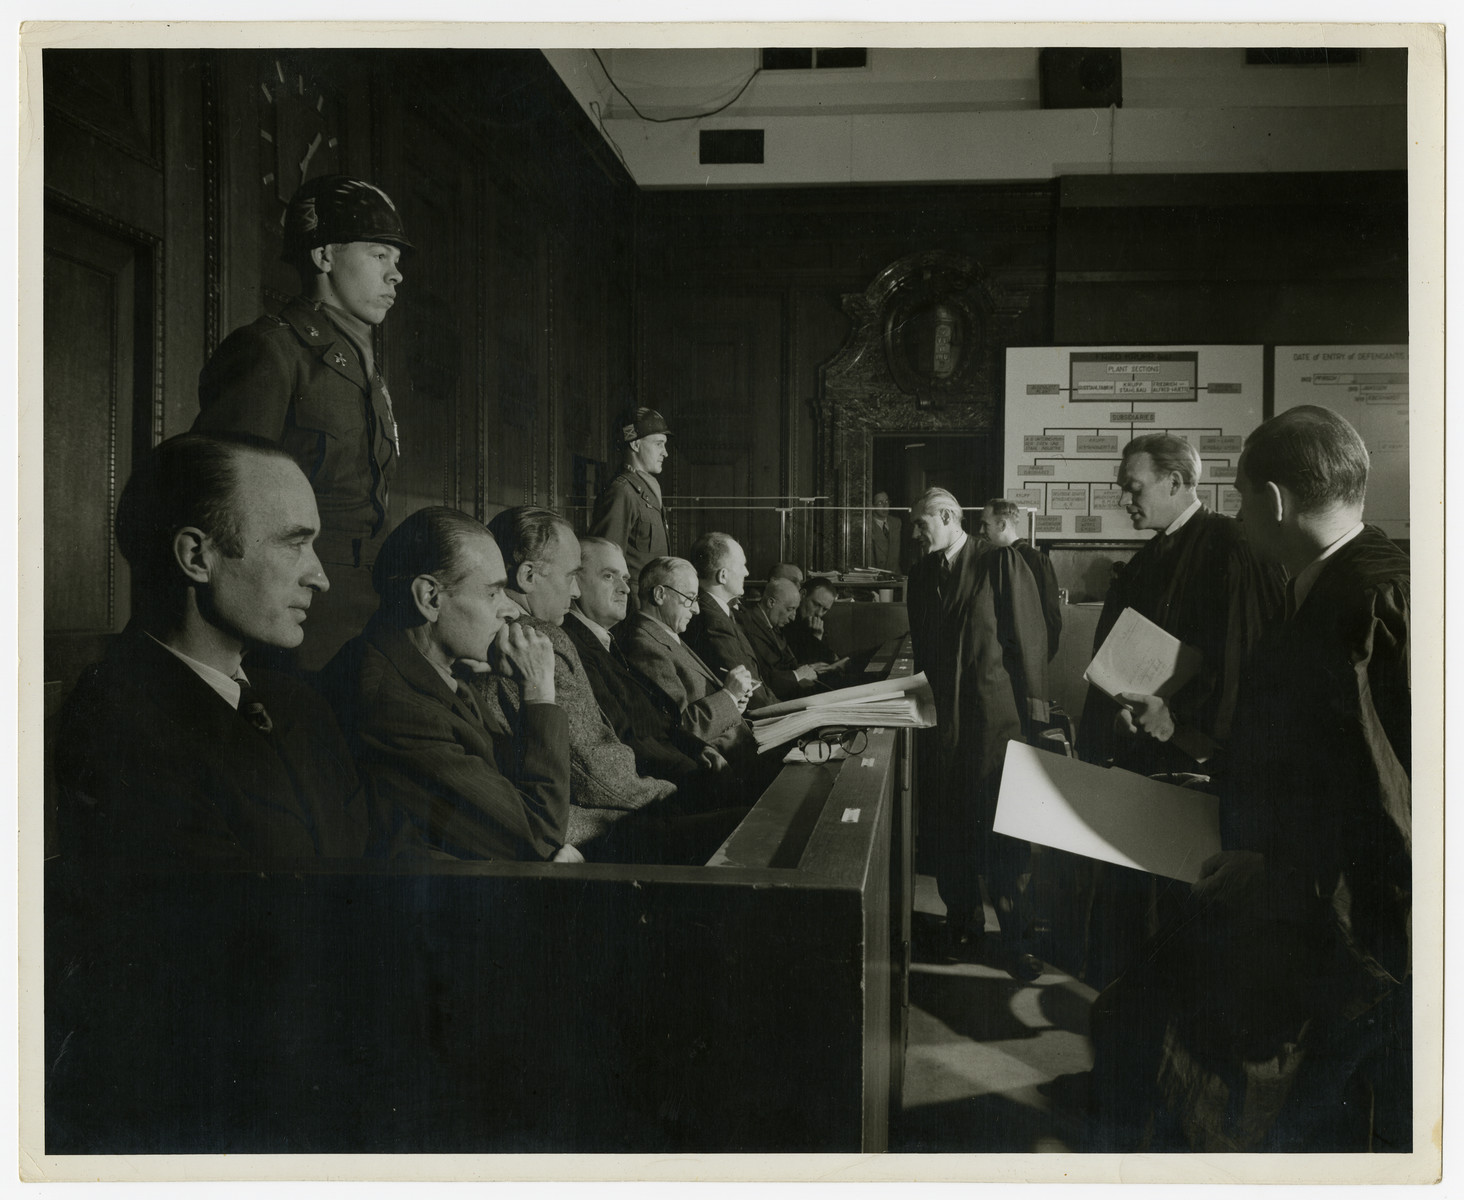 Close-up view of the defendants of the Krupp case.  Behind them are military police.  Seated in the front left is the chief defendant Alfred Krupp von Bohlen.  In the back is a poster showing organizational structures.